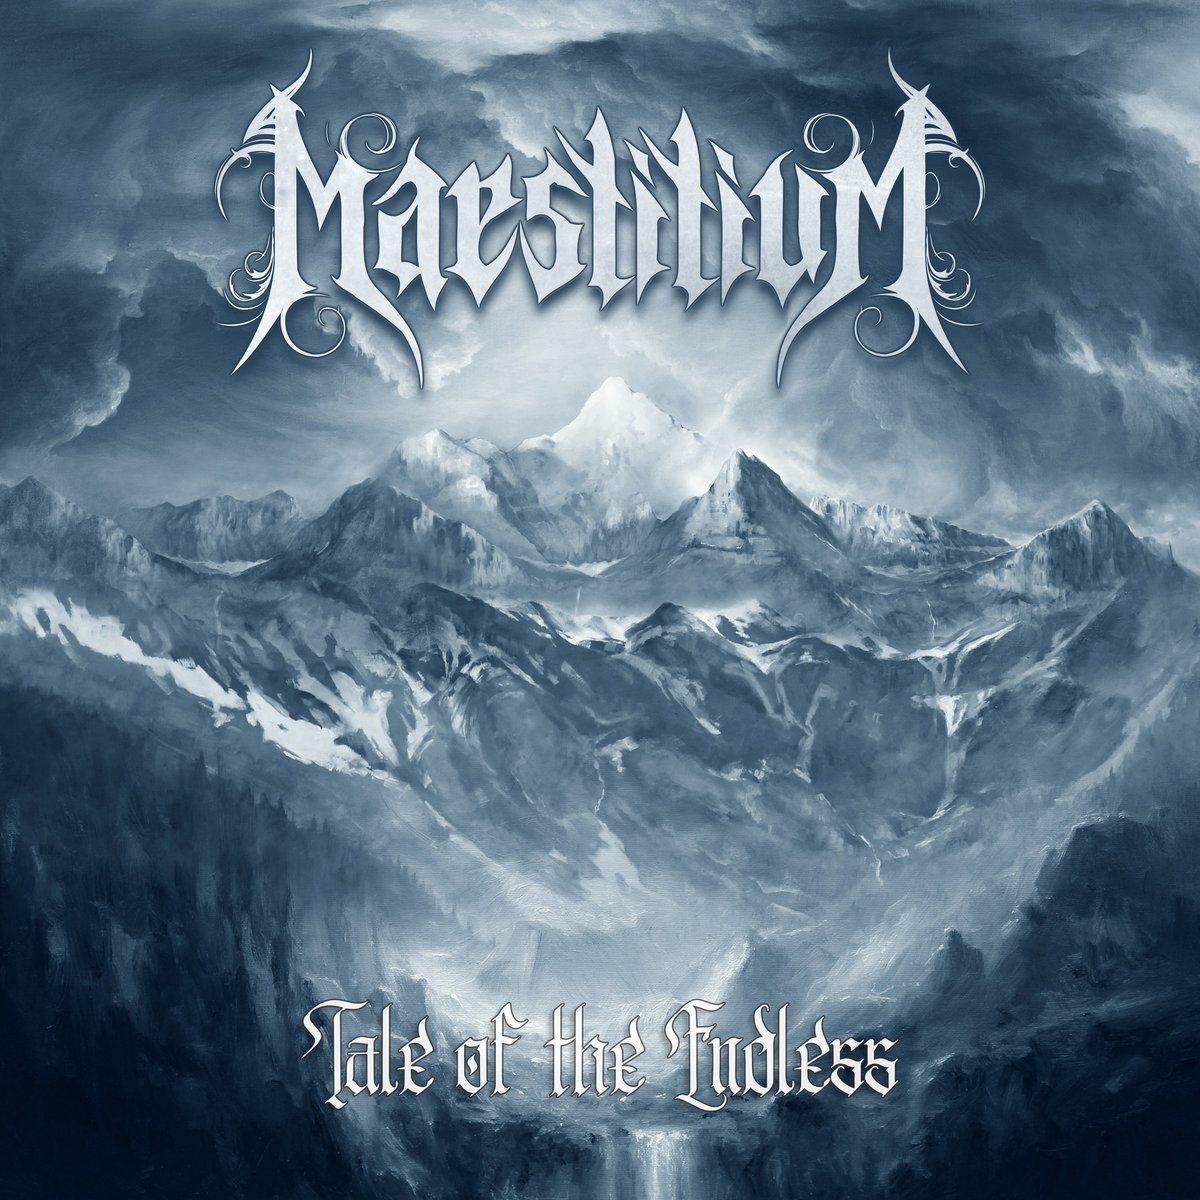 Tale Of The Endless maestitium Cover Artwork